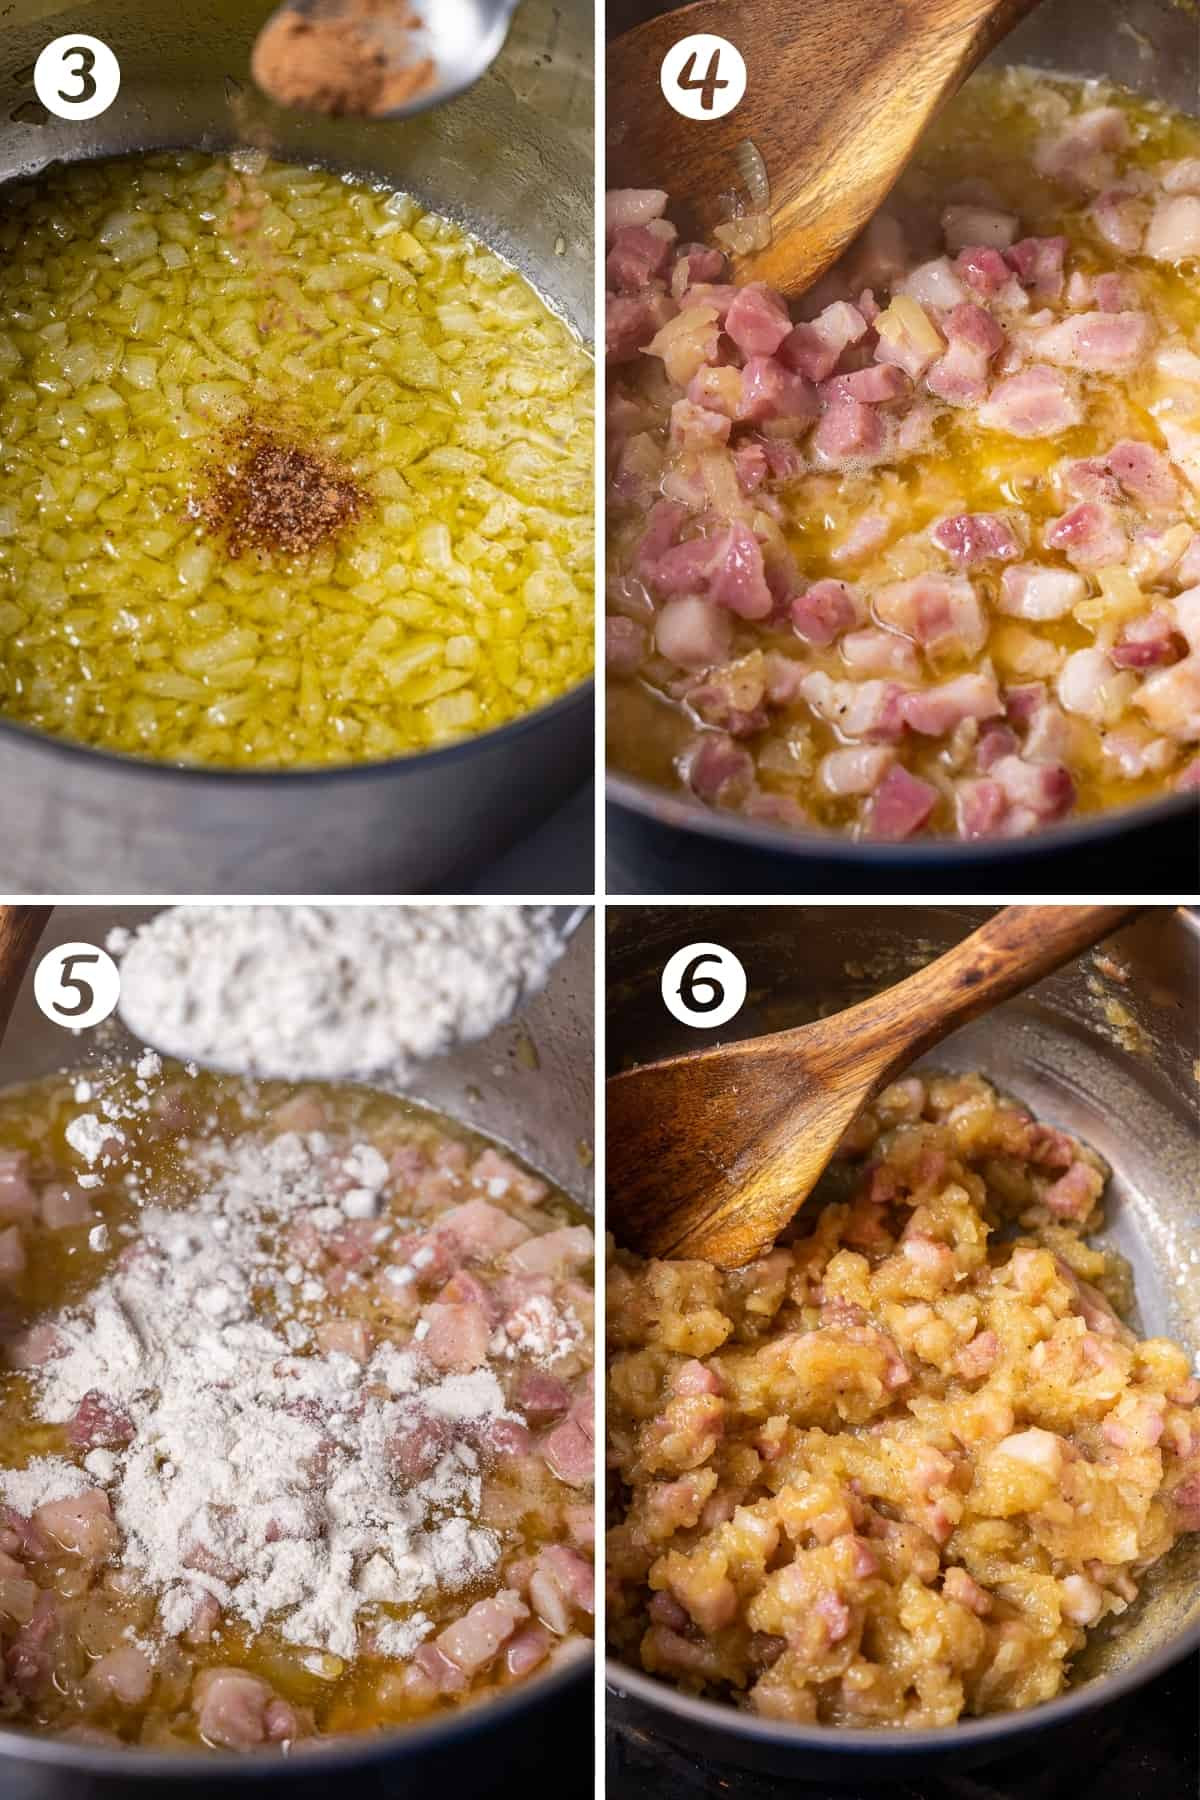 Steps 3-6 for making ham croquettes in a grid. Adding nutmeg to onions, adding Serrano ham, adding flour, and sauteeing.